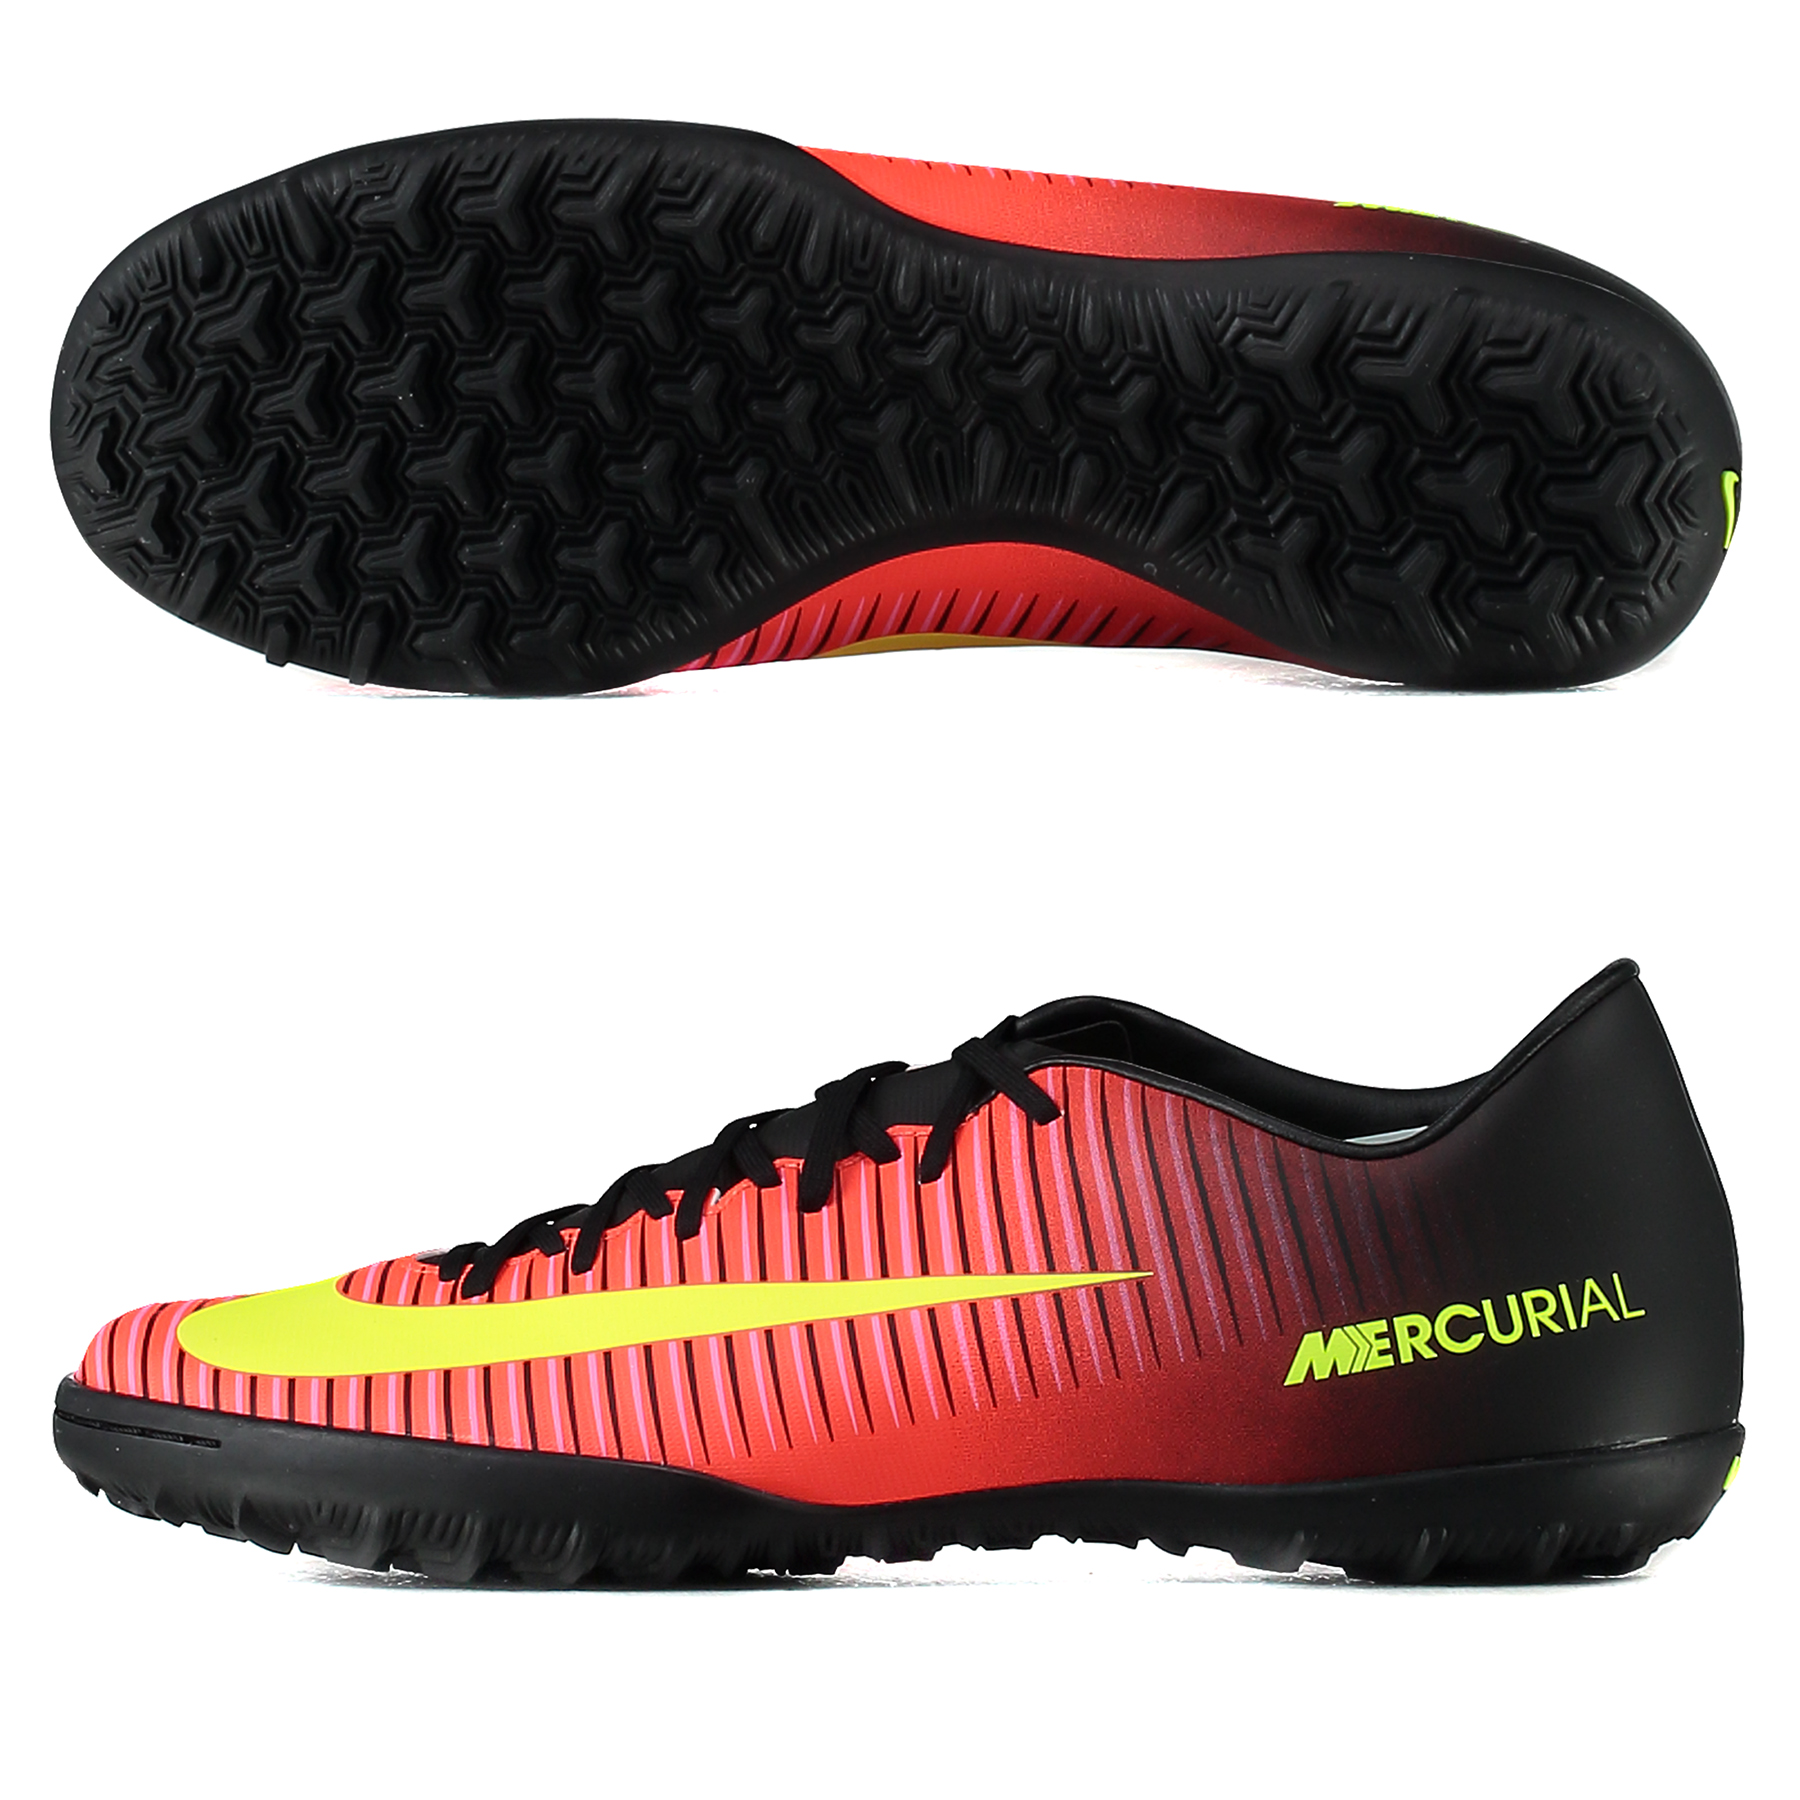 Nike Mercurial Victory VI Astroturf Trainers - Total Crimson/Volt/Blac